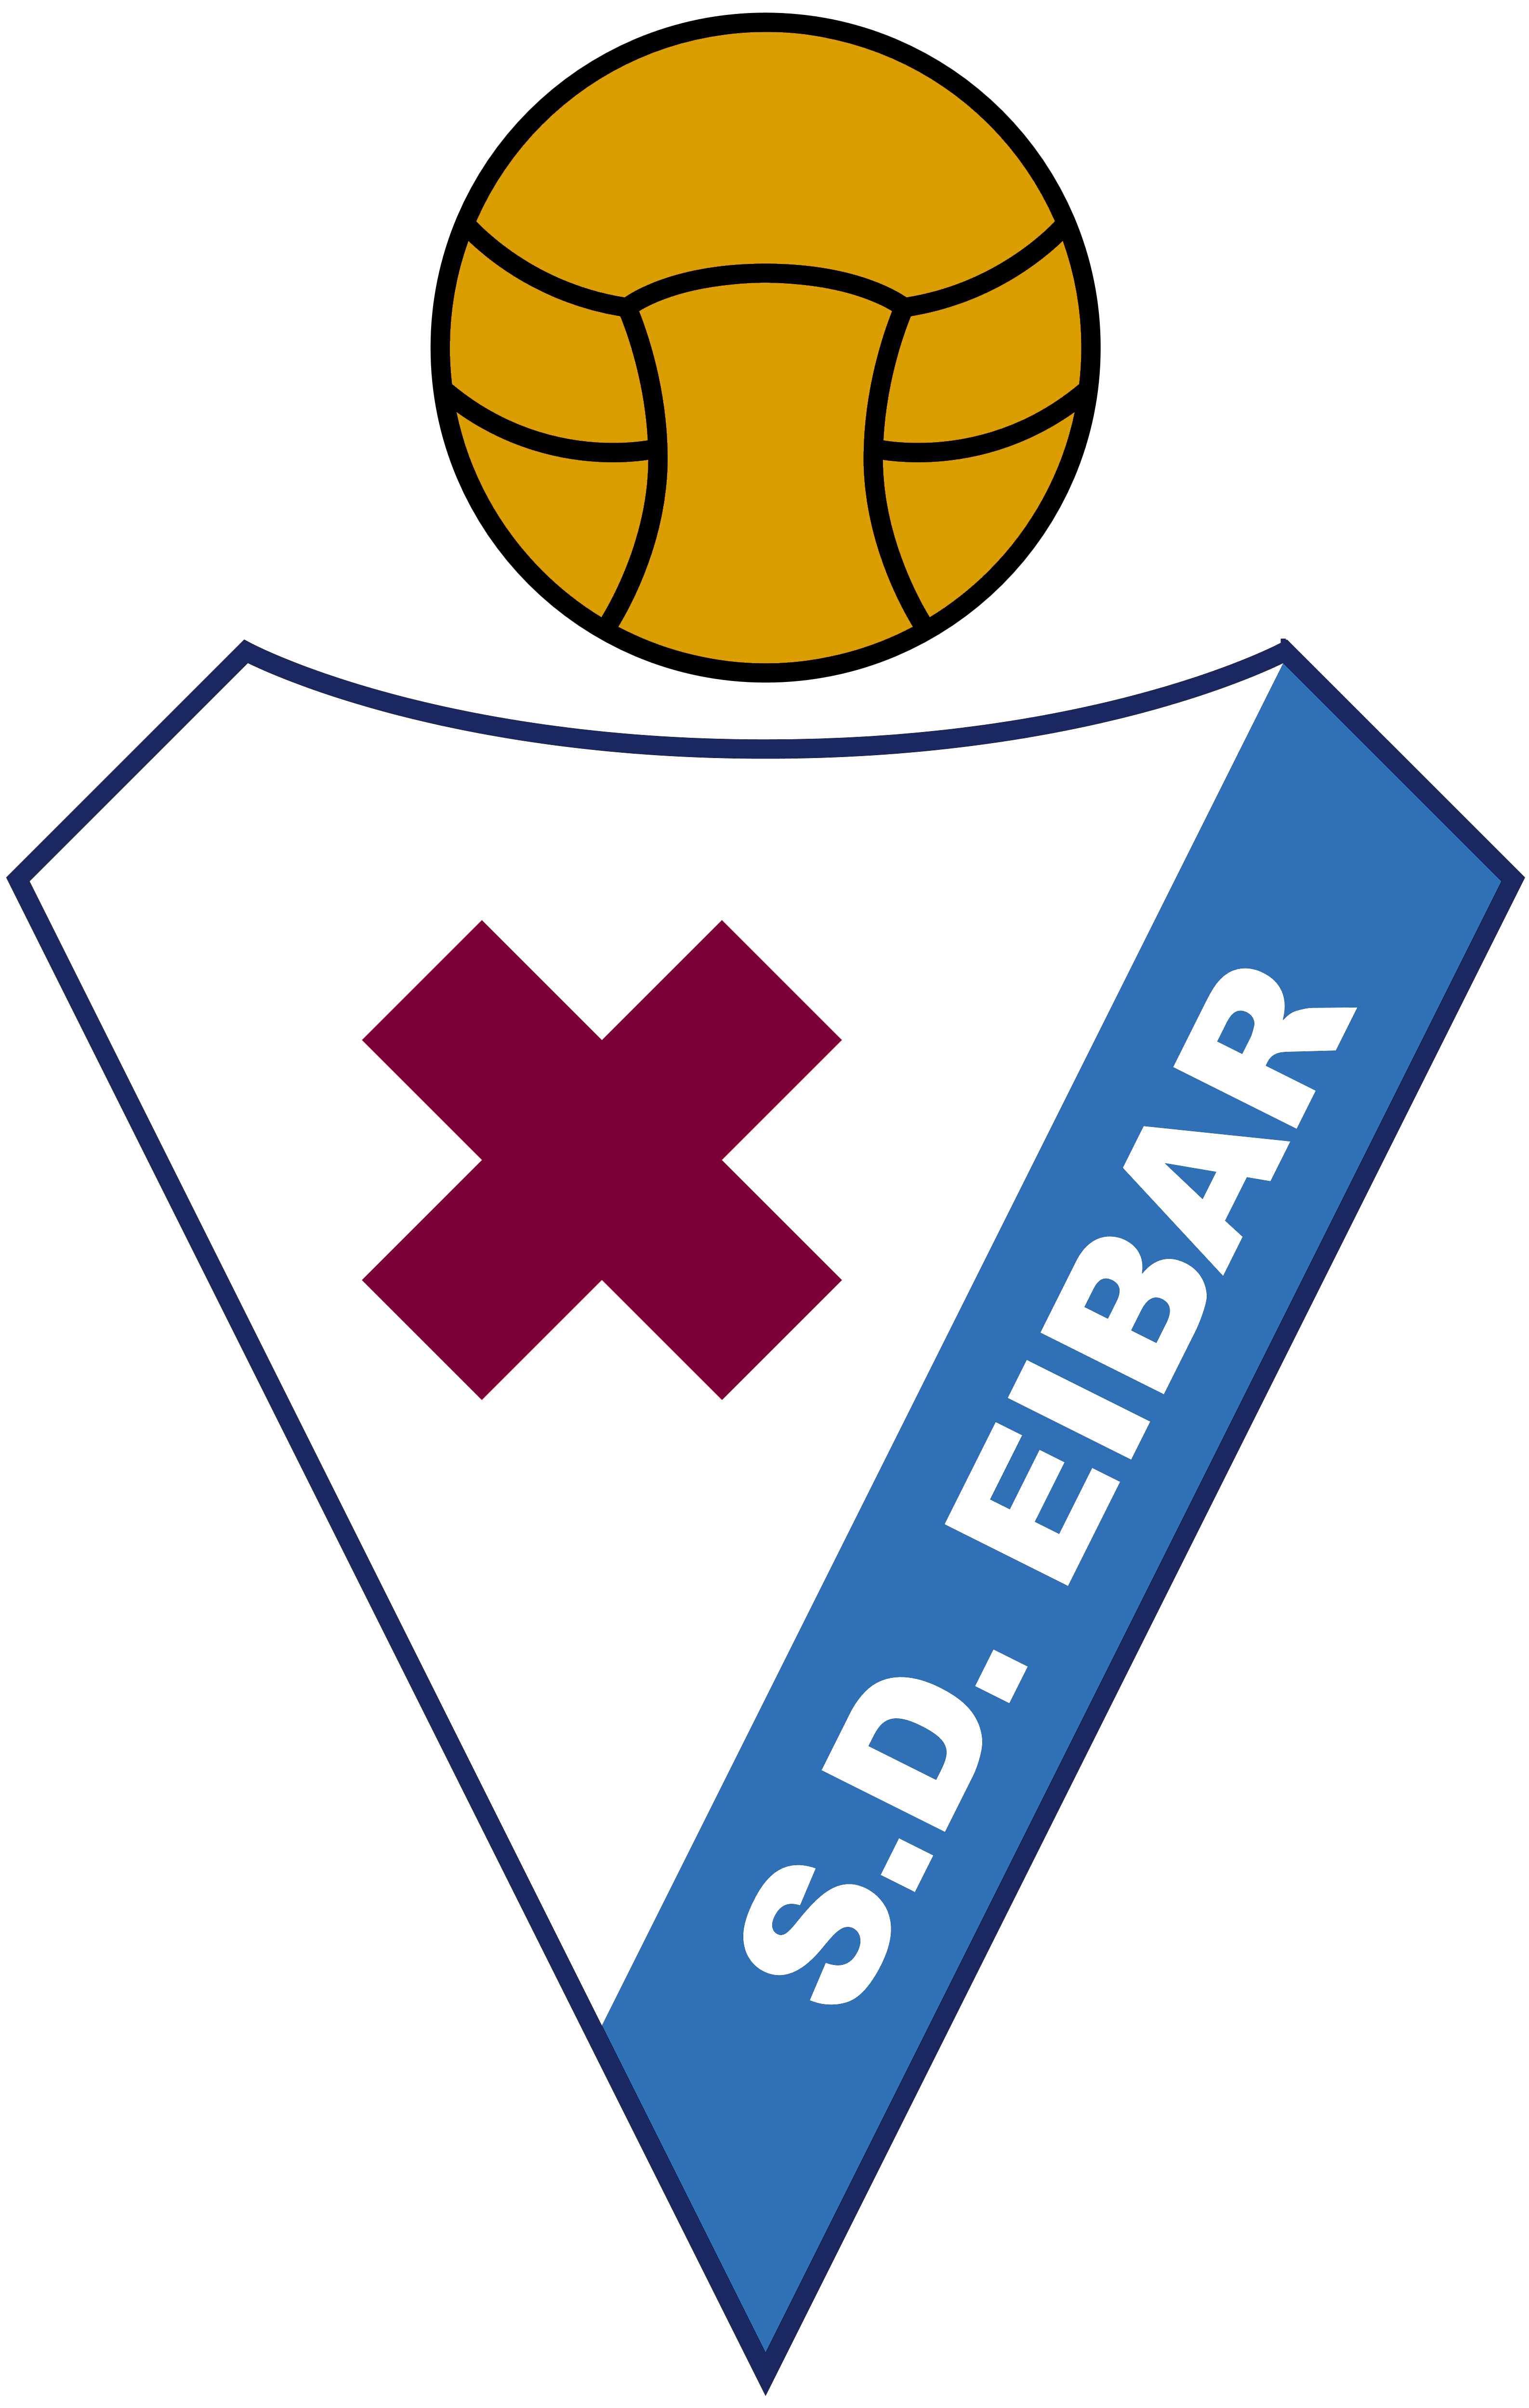 SD Eibar – Logos Download